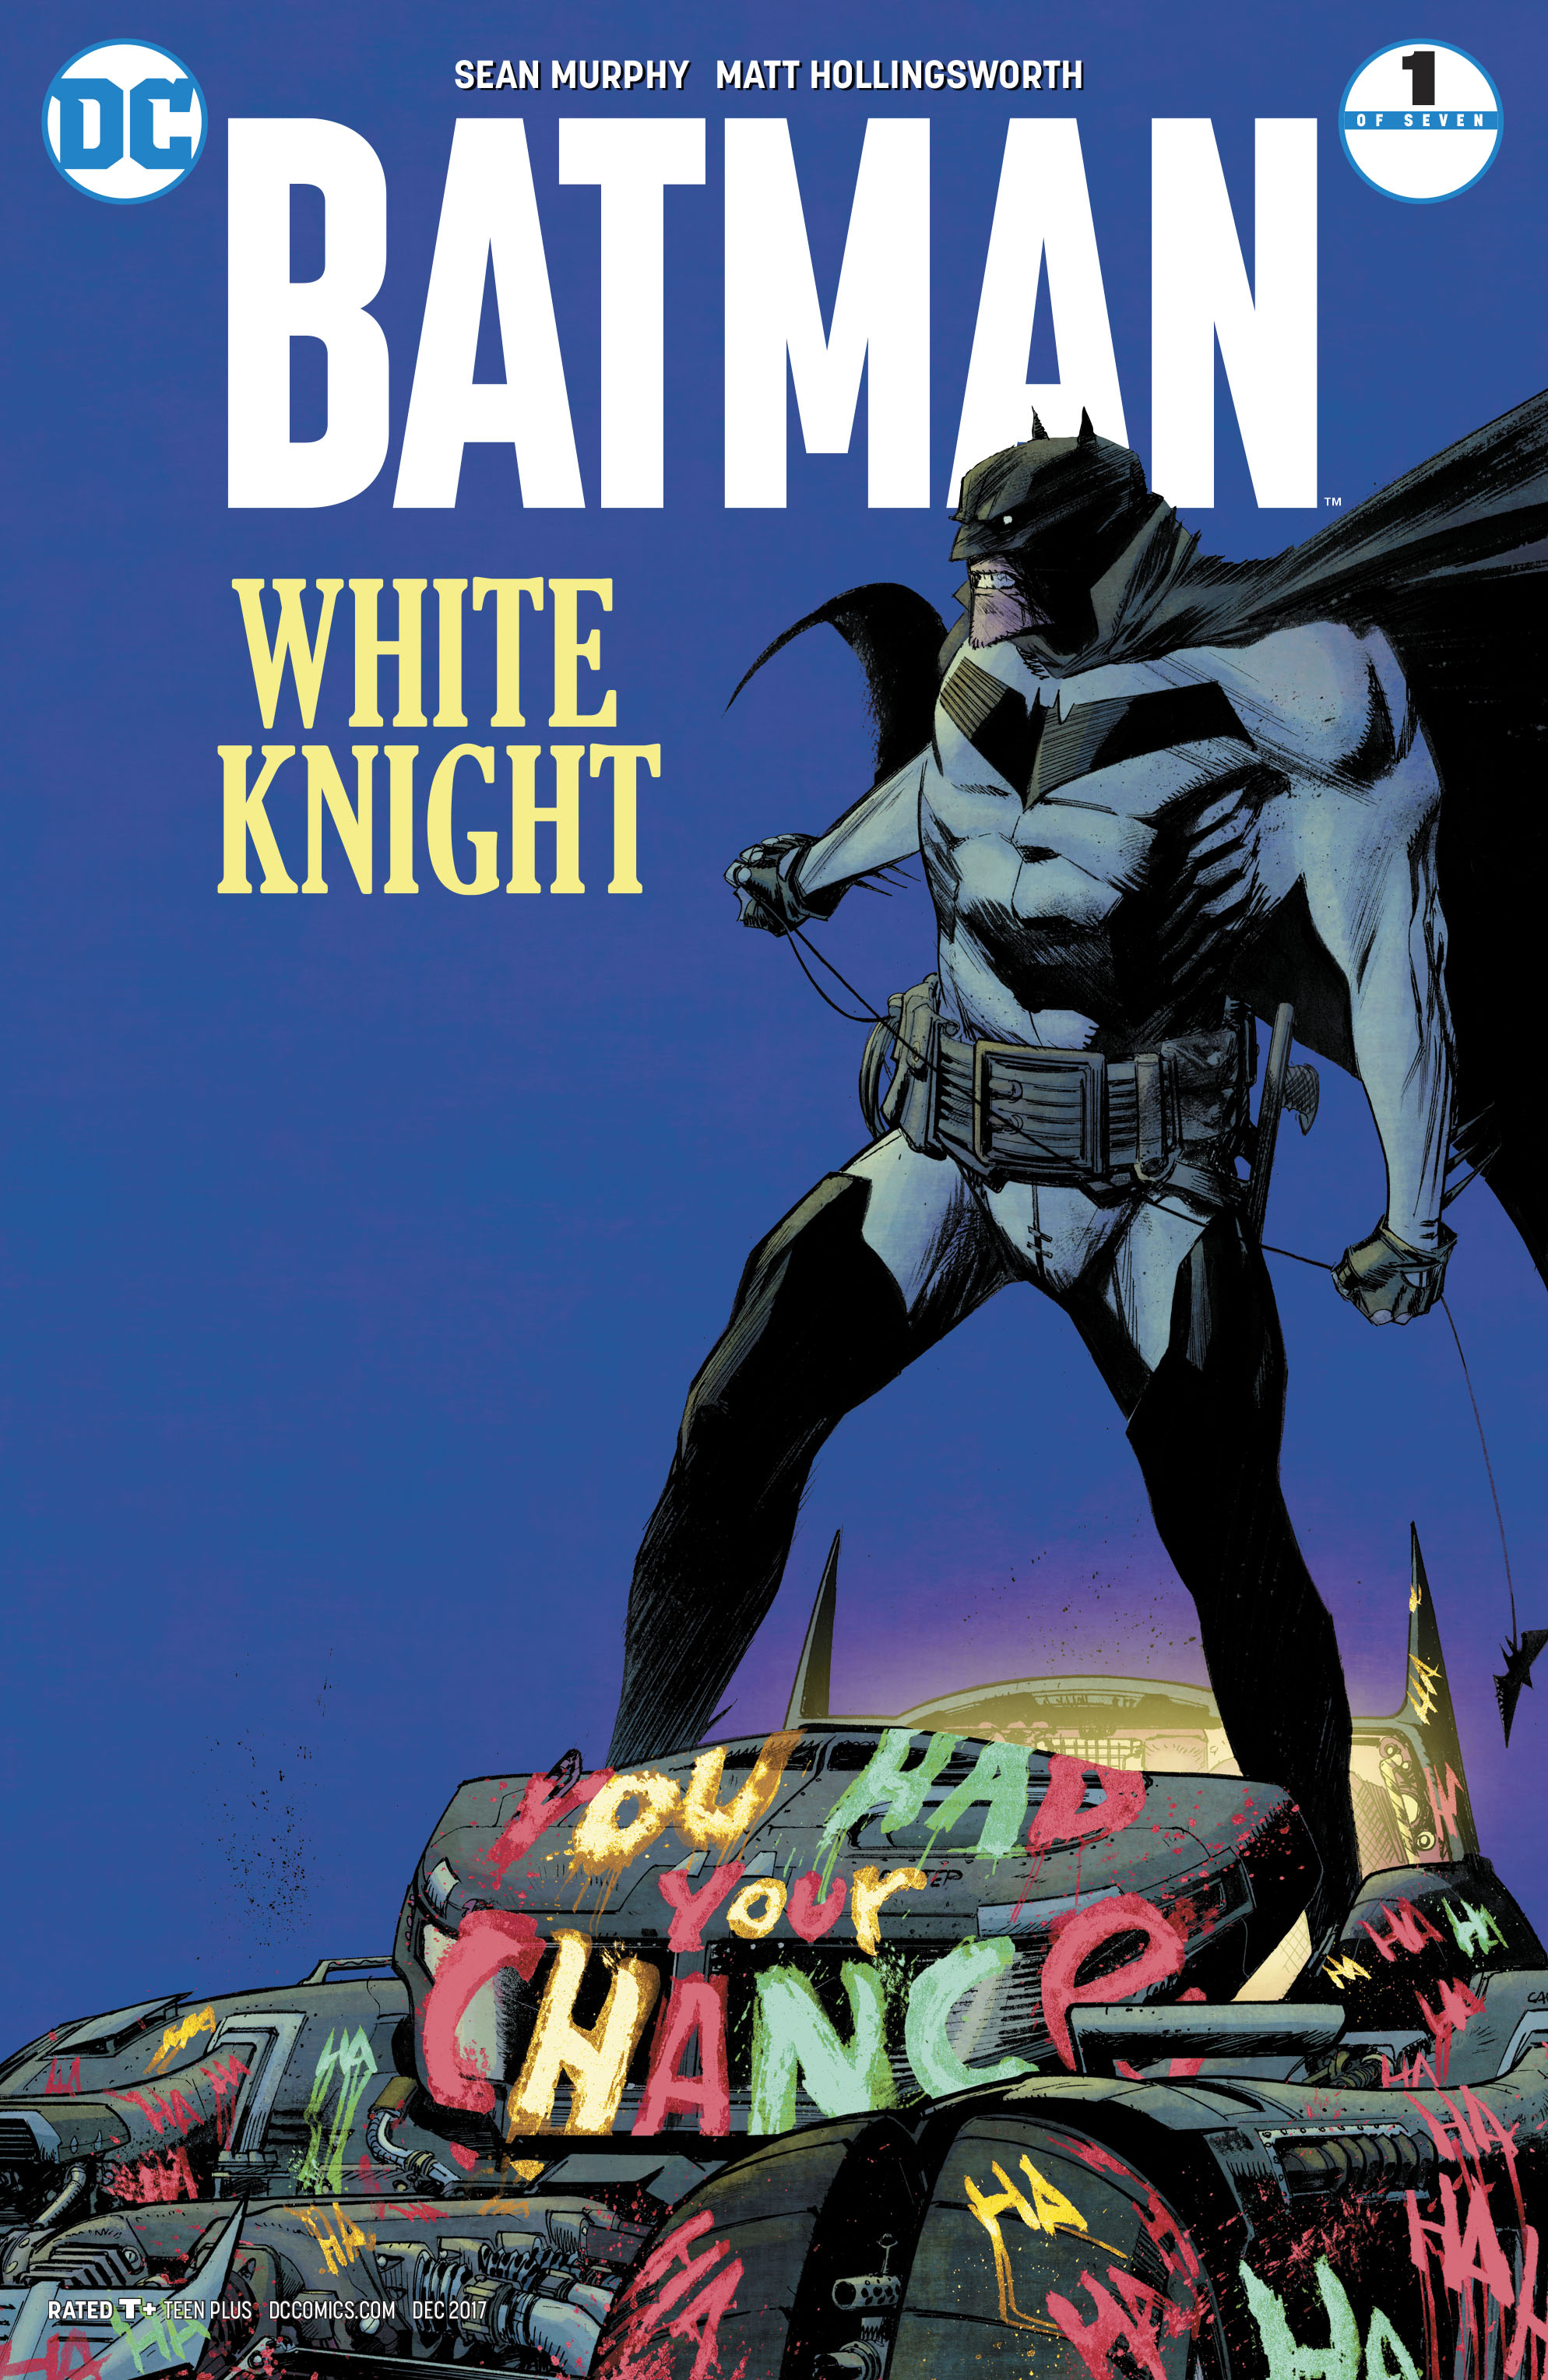 BATMAN WHITE KNIGHT #1